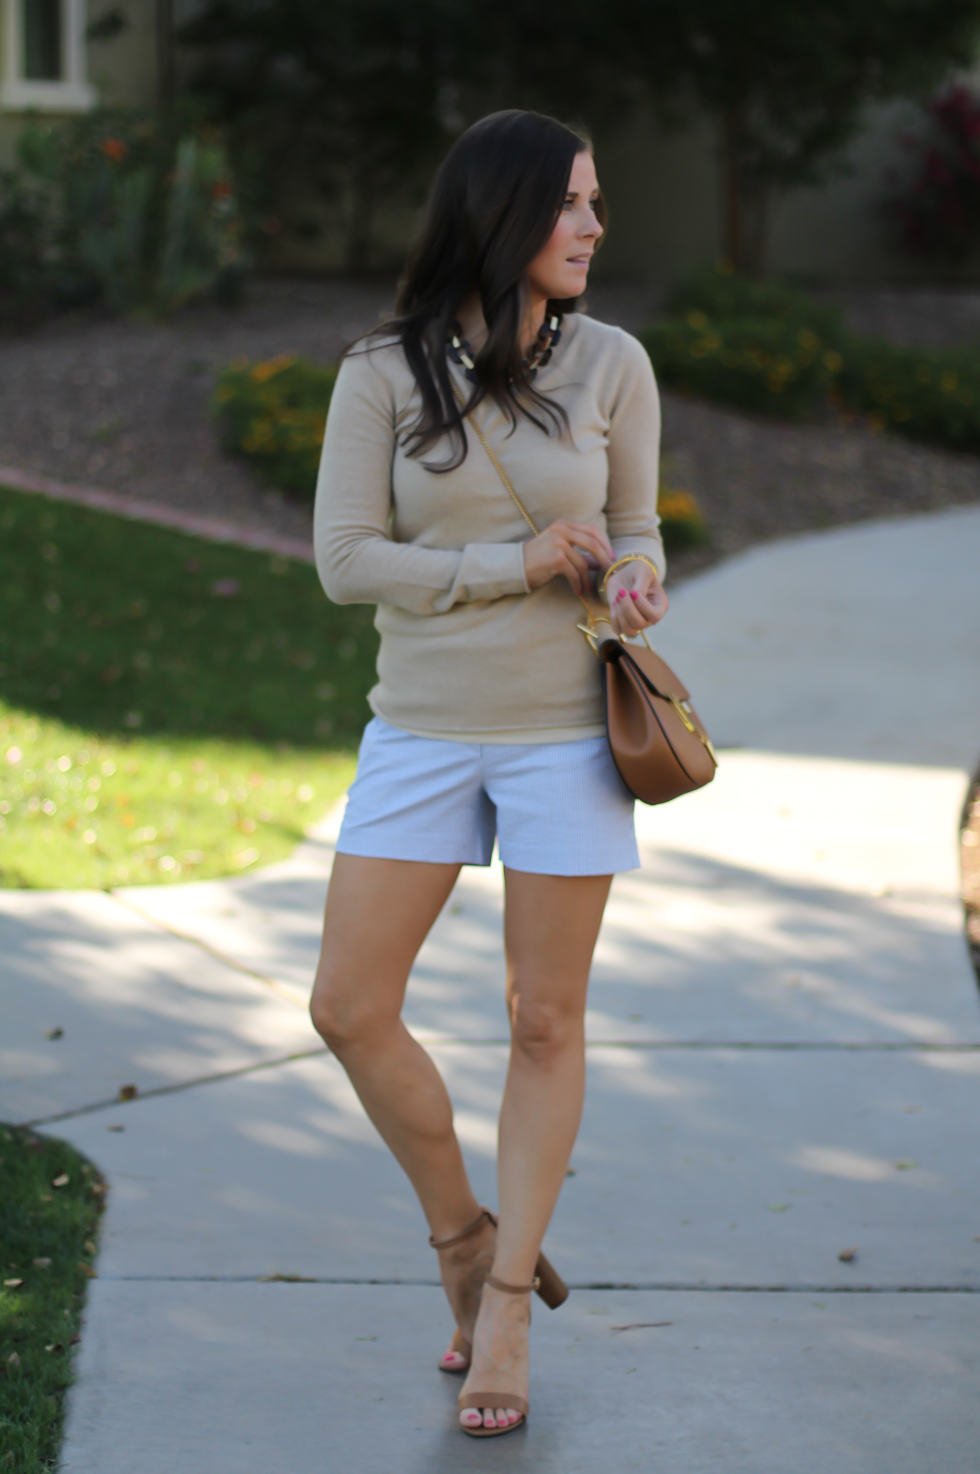 Seersucker Shorts, Tan Cashmere Sweater, Tan Leather Ankle Strap Heels, Tan Leather Chain Strap Bag, Ann Taylor, J.Crew, Steve Madden, Chloe  2